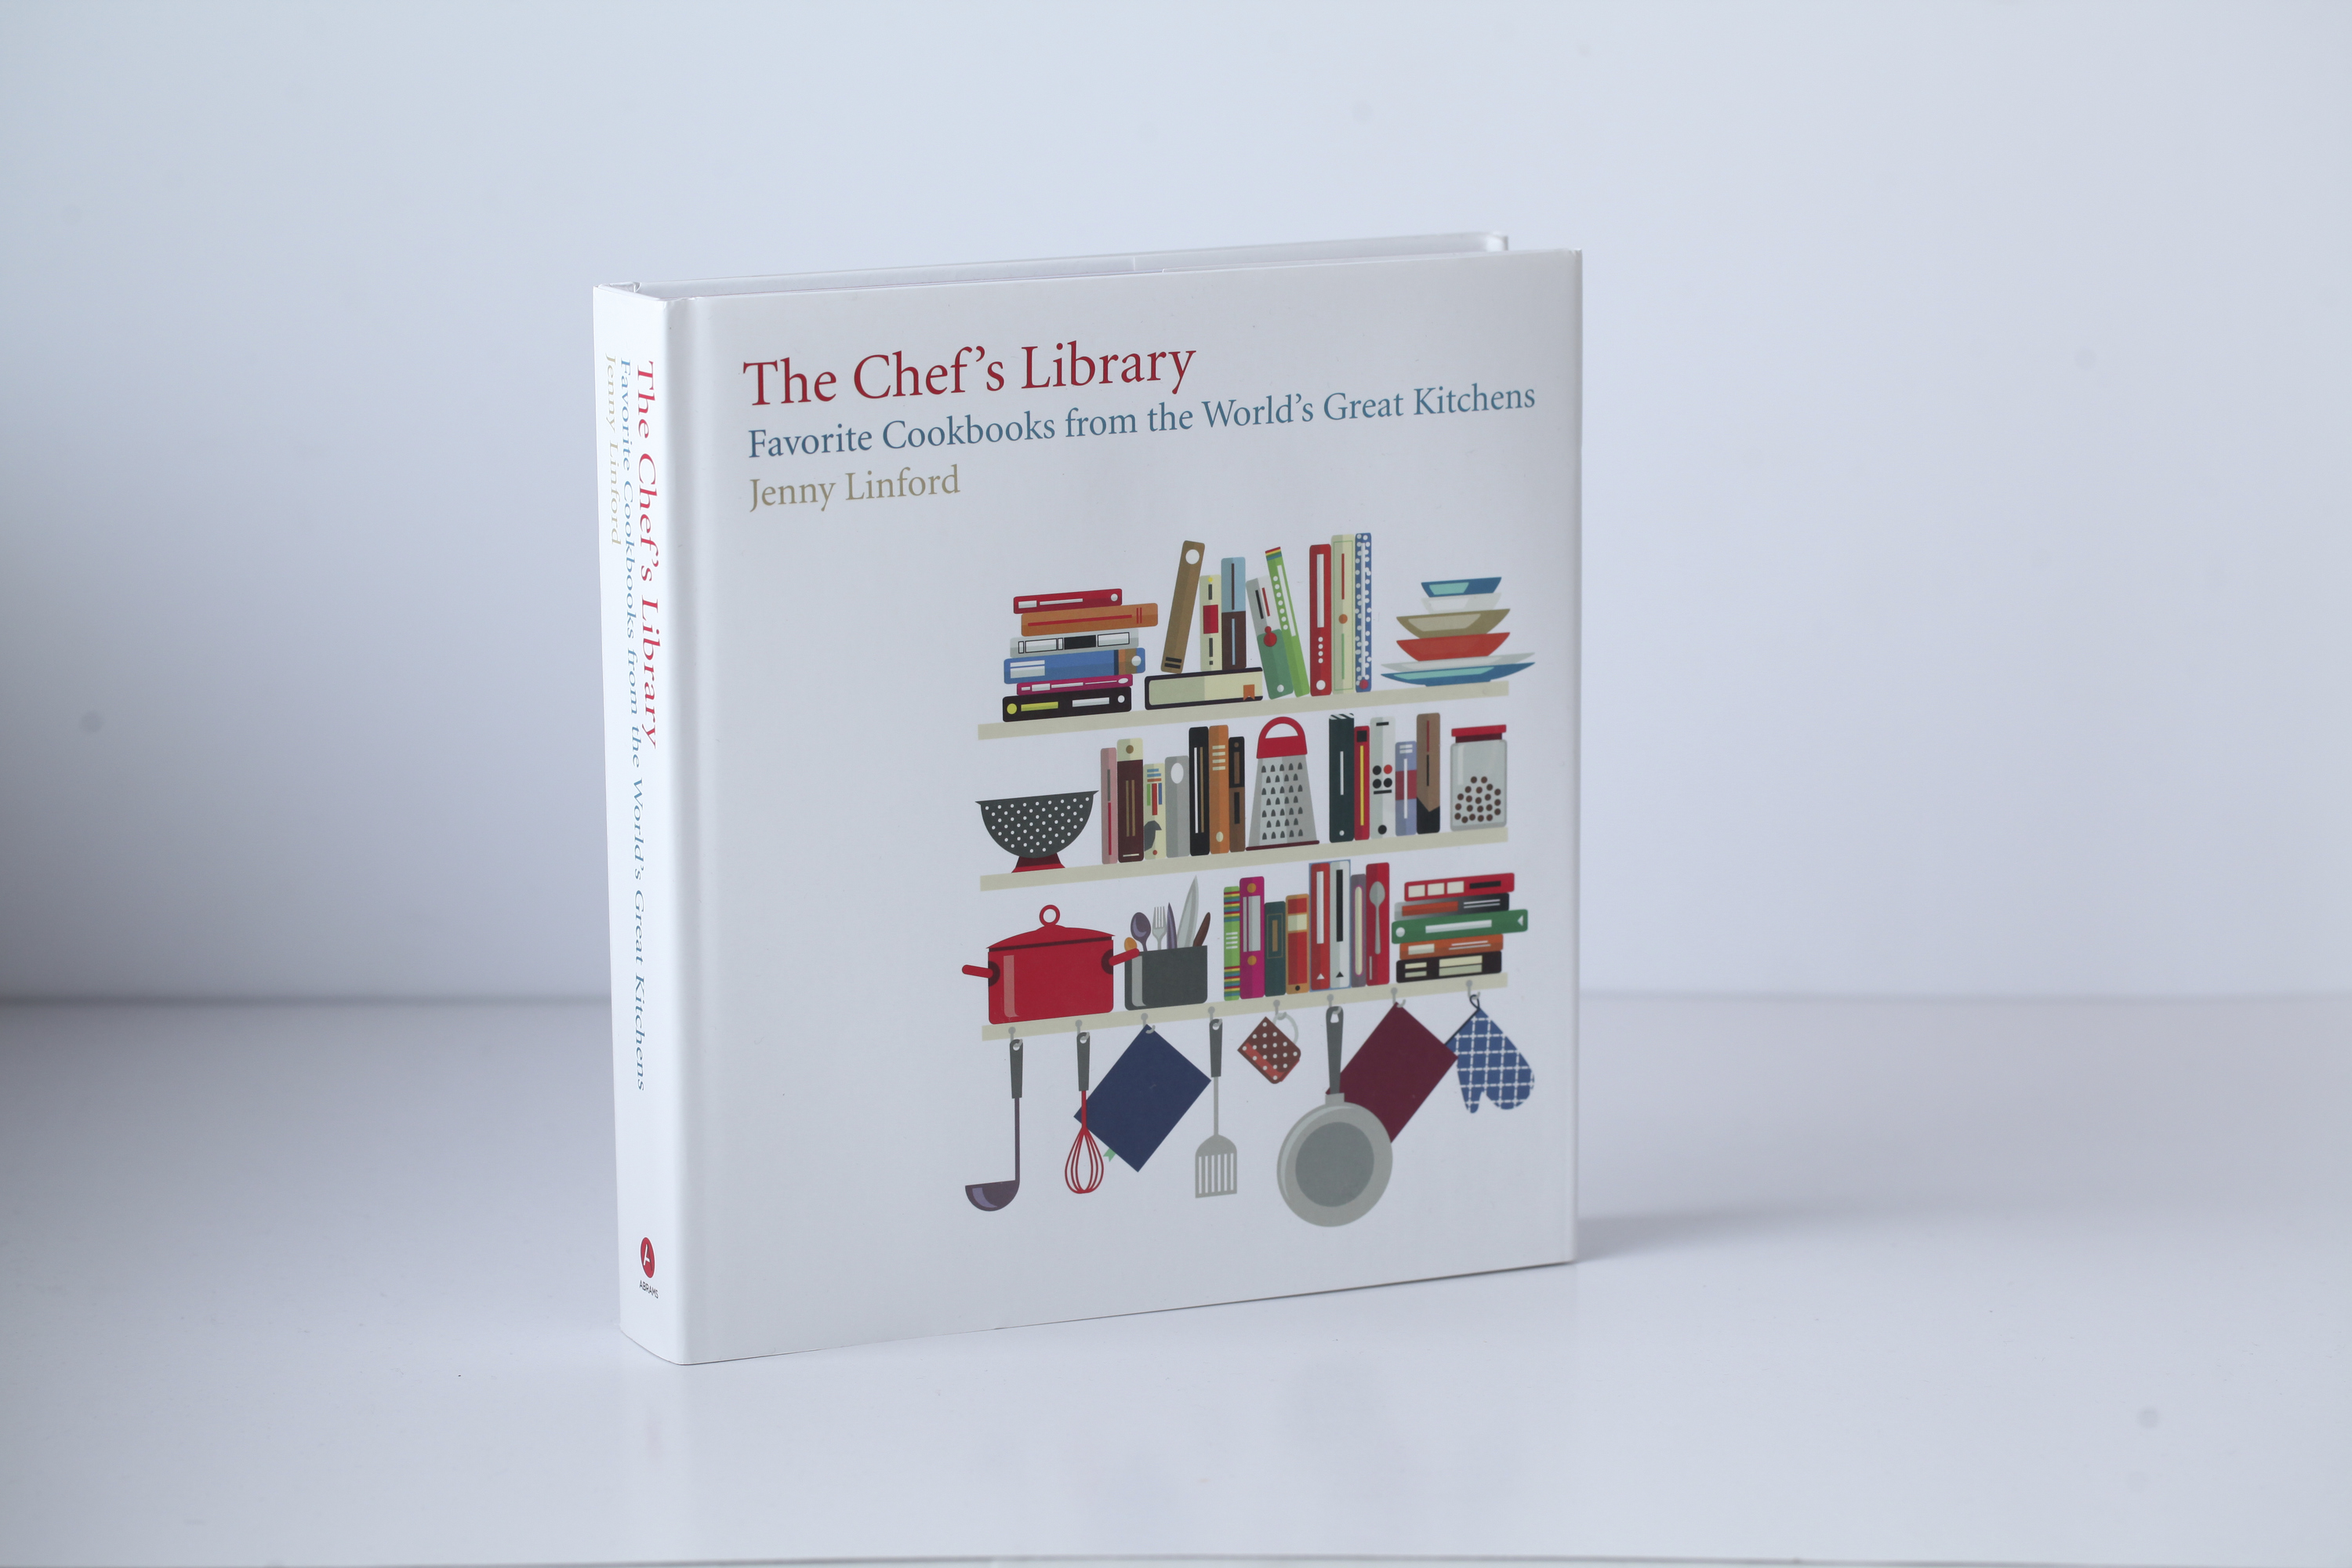 'The Chef's Library: Favorite Cookbooks from the World's Great Kitchens' by Jenny Linford